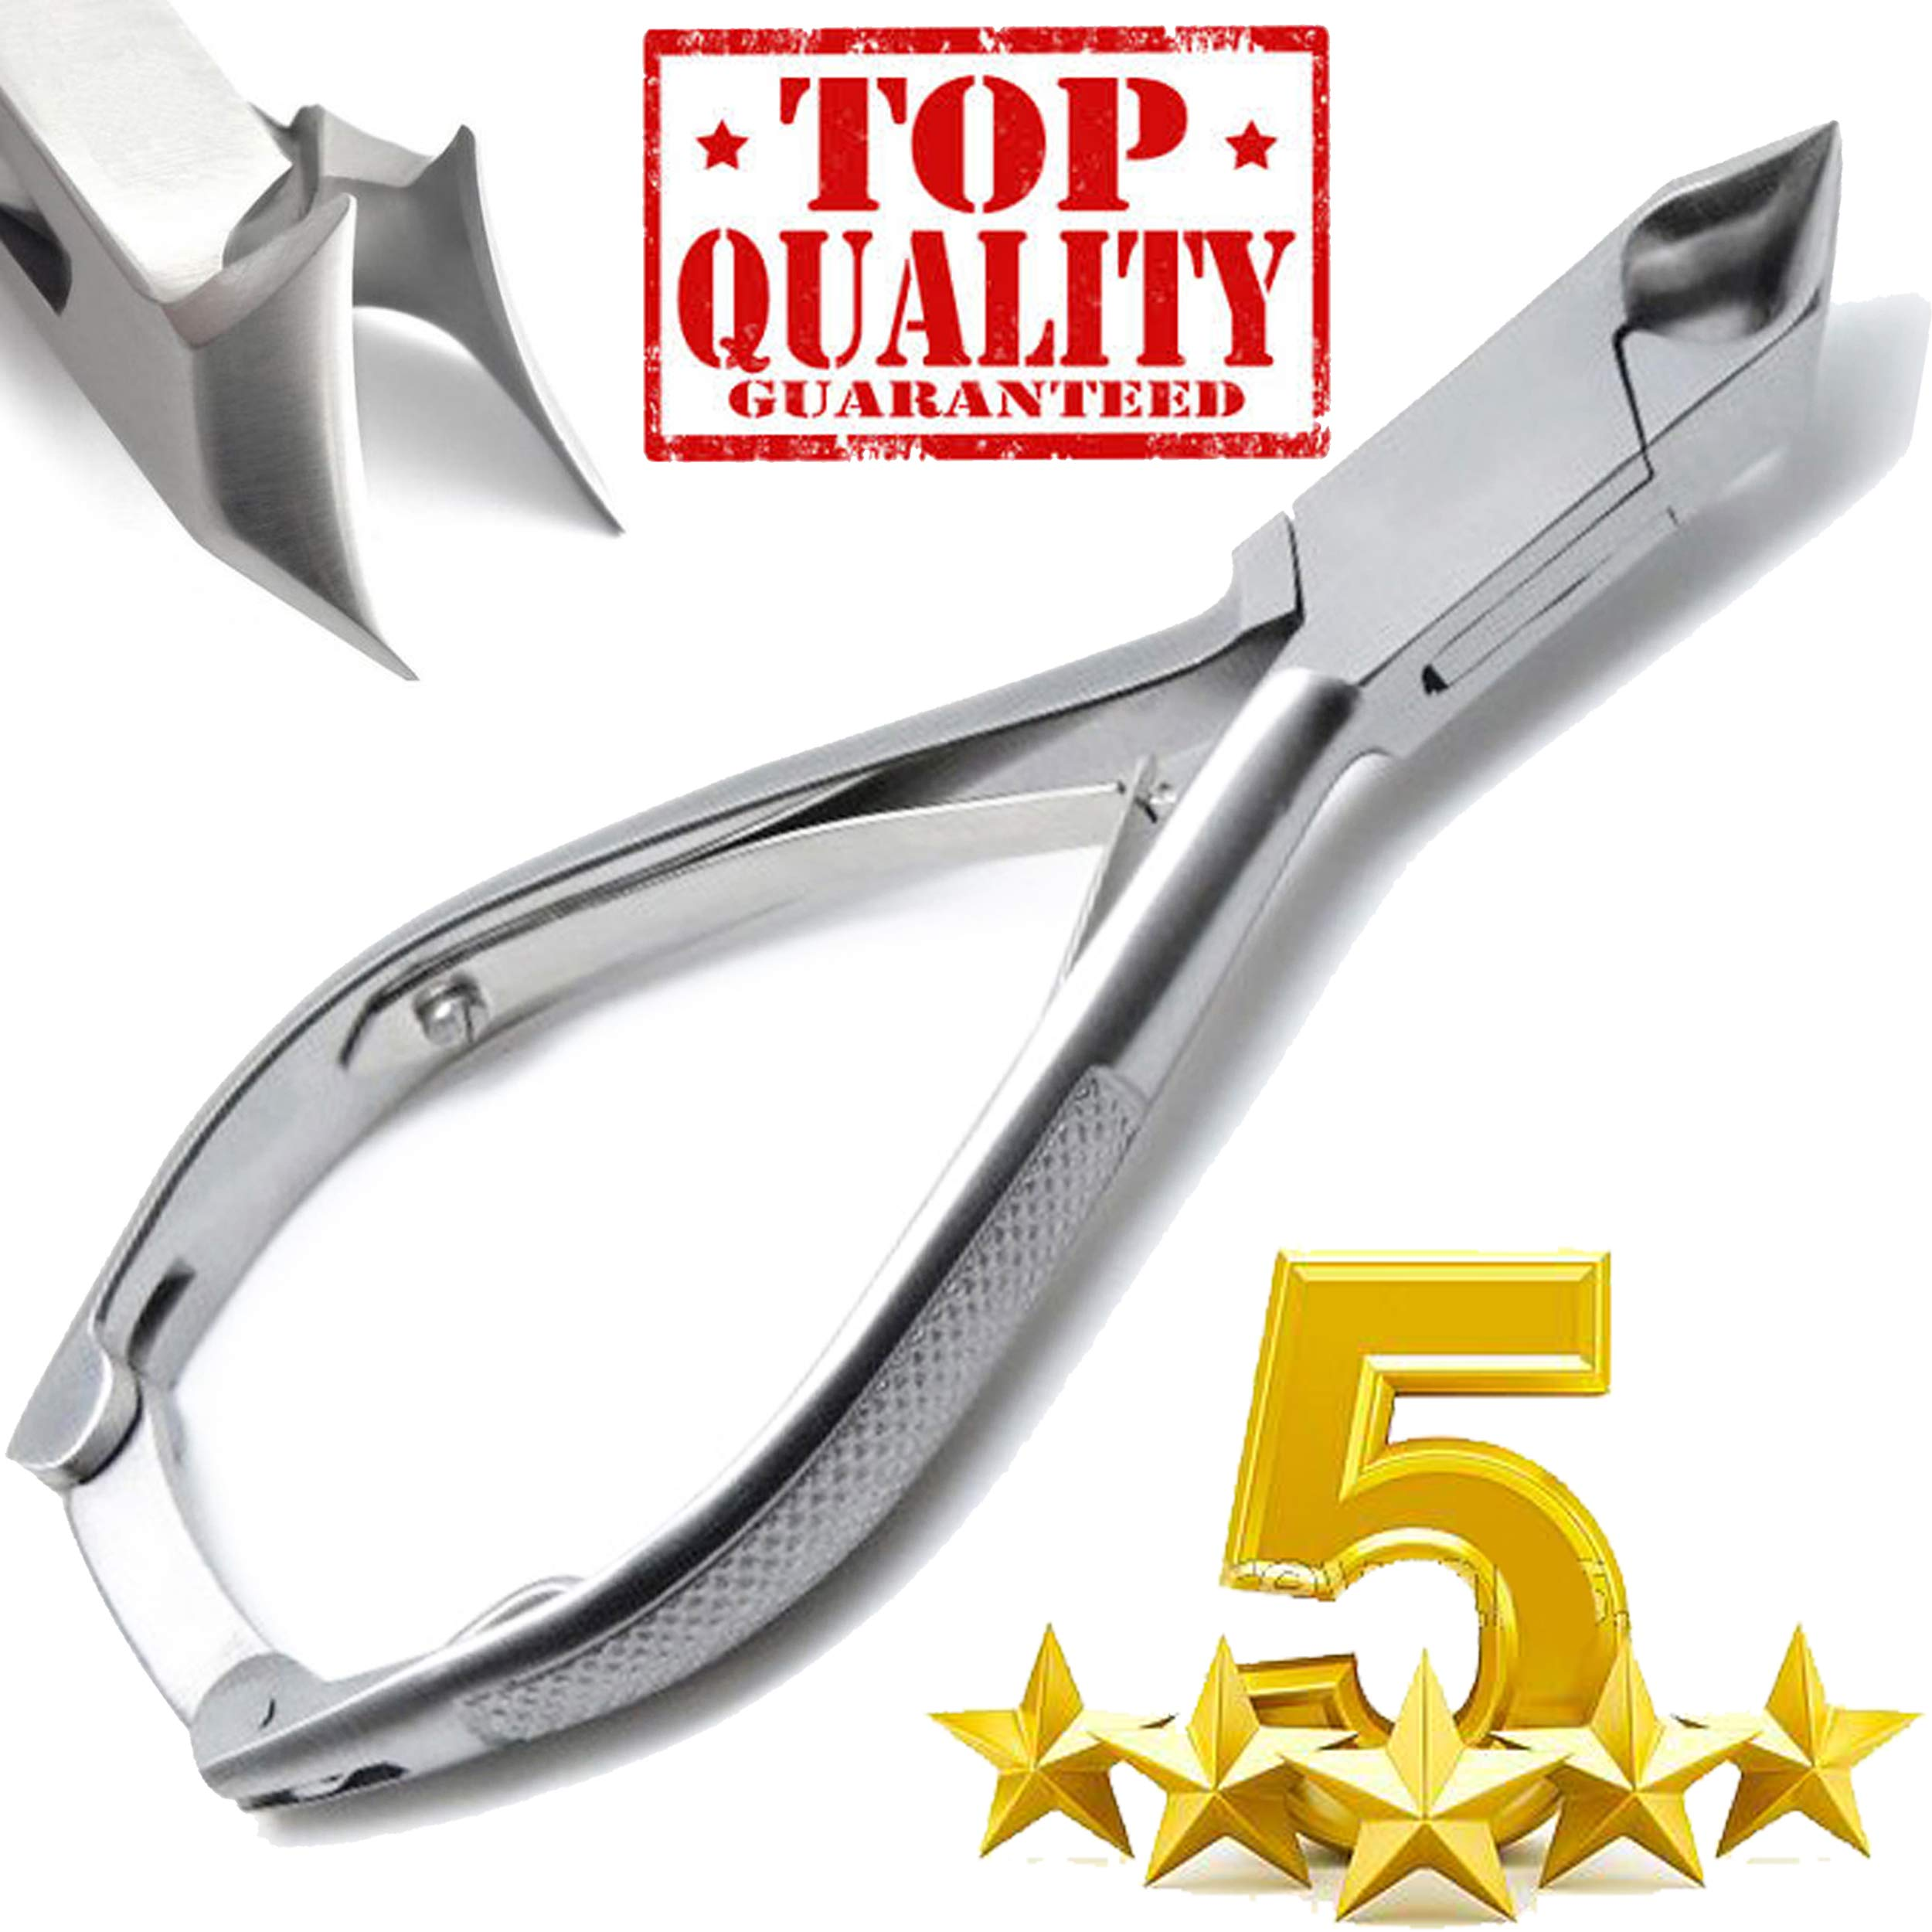 Professional Toe Nail Cutters Clippers Nippers Chiropody Podiatry Heavy Duty - for Very Thick Nails Fungus Nails - Moon Shape - C Shape - Professional Grade Stainless Steel by Samsal-Parts